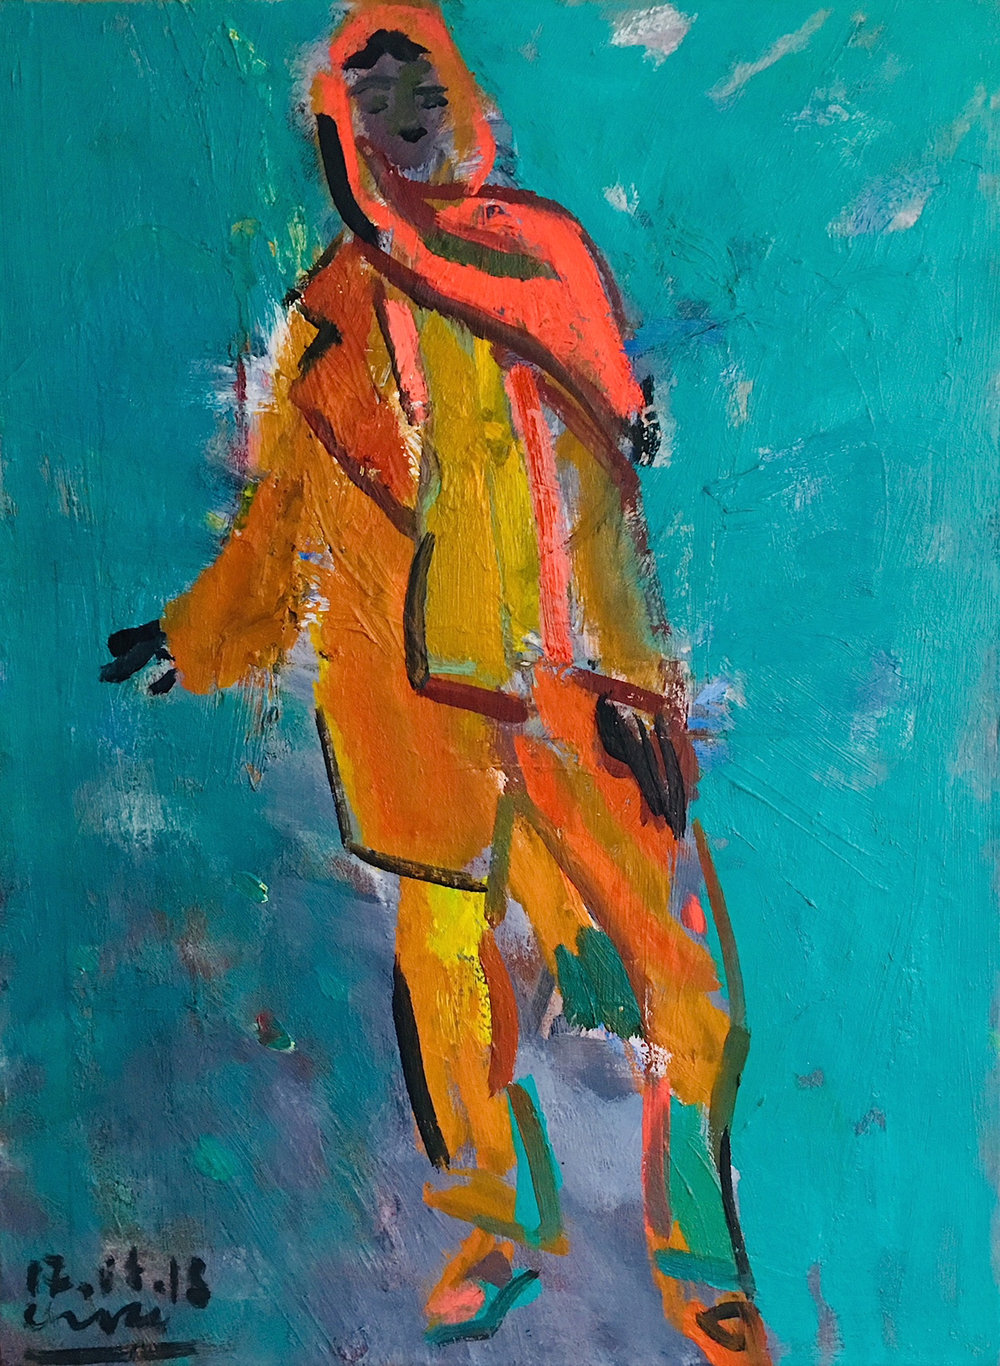 Title: Mimi in her Silk Scarf  Size: 61 x 46 cm  Medium: Oil on canvas  Price: RESERVED